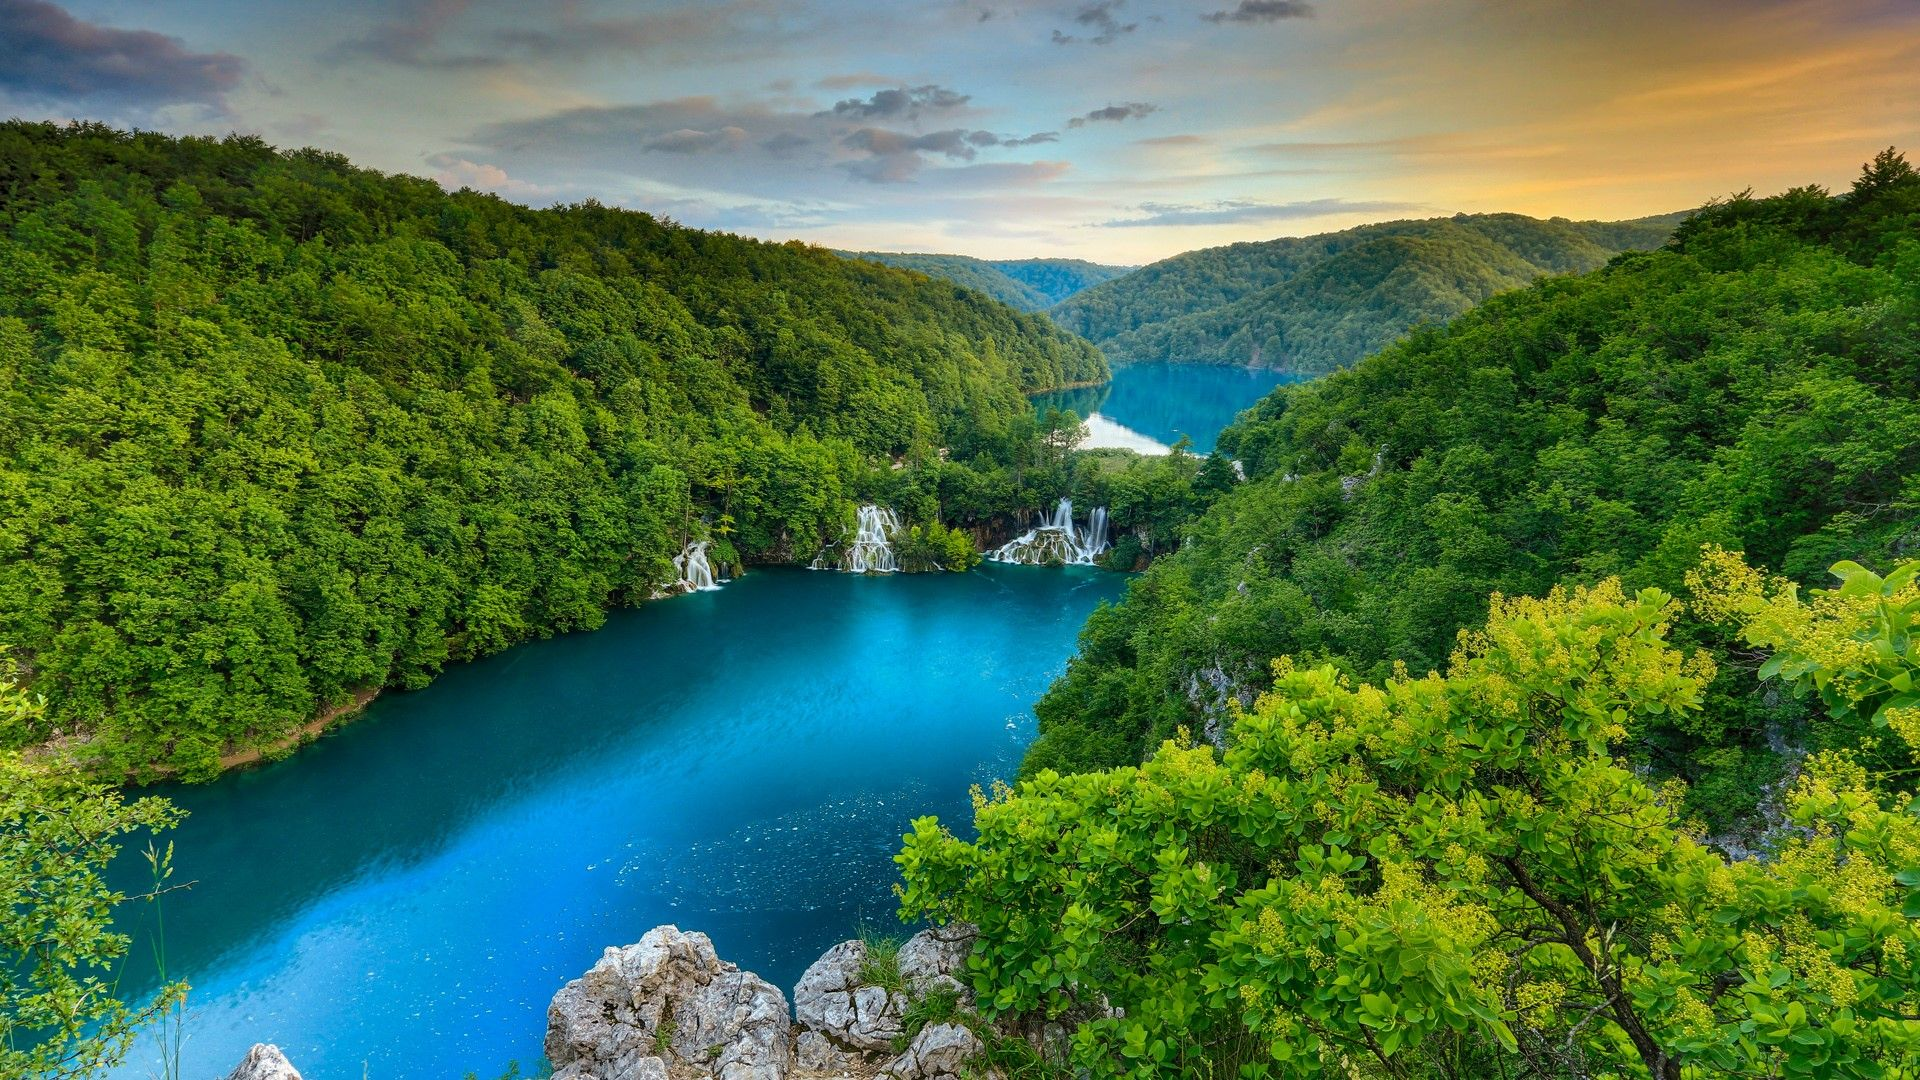 Plitvice Lakes National Park Croatia [Desktop wallpaper 1920x1080